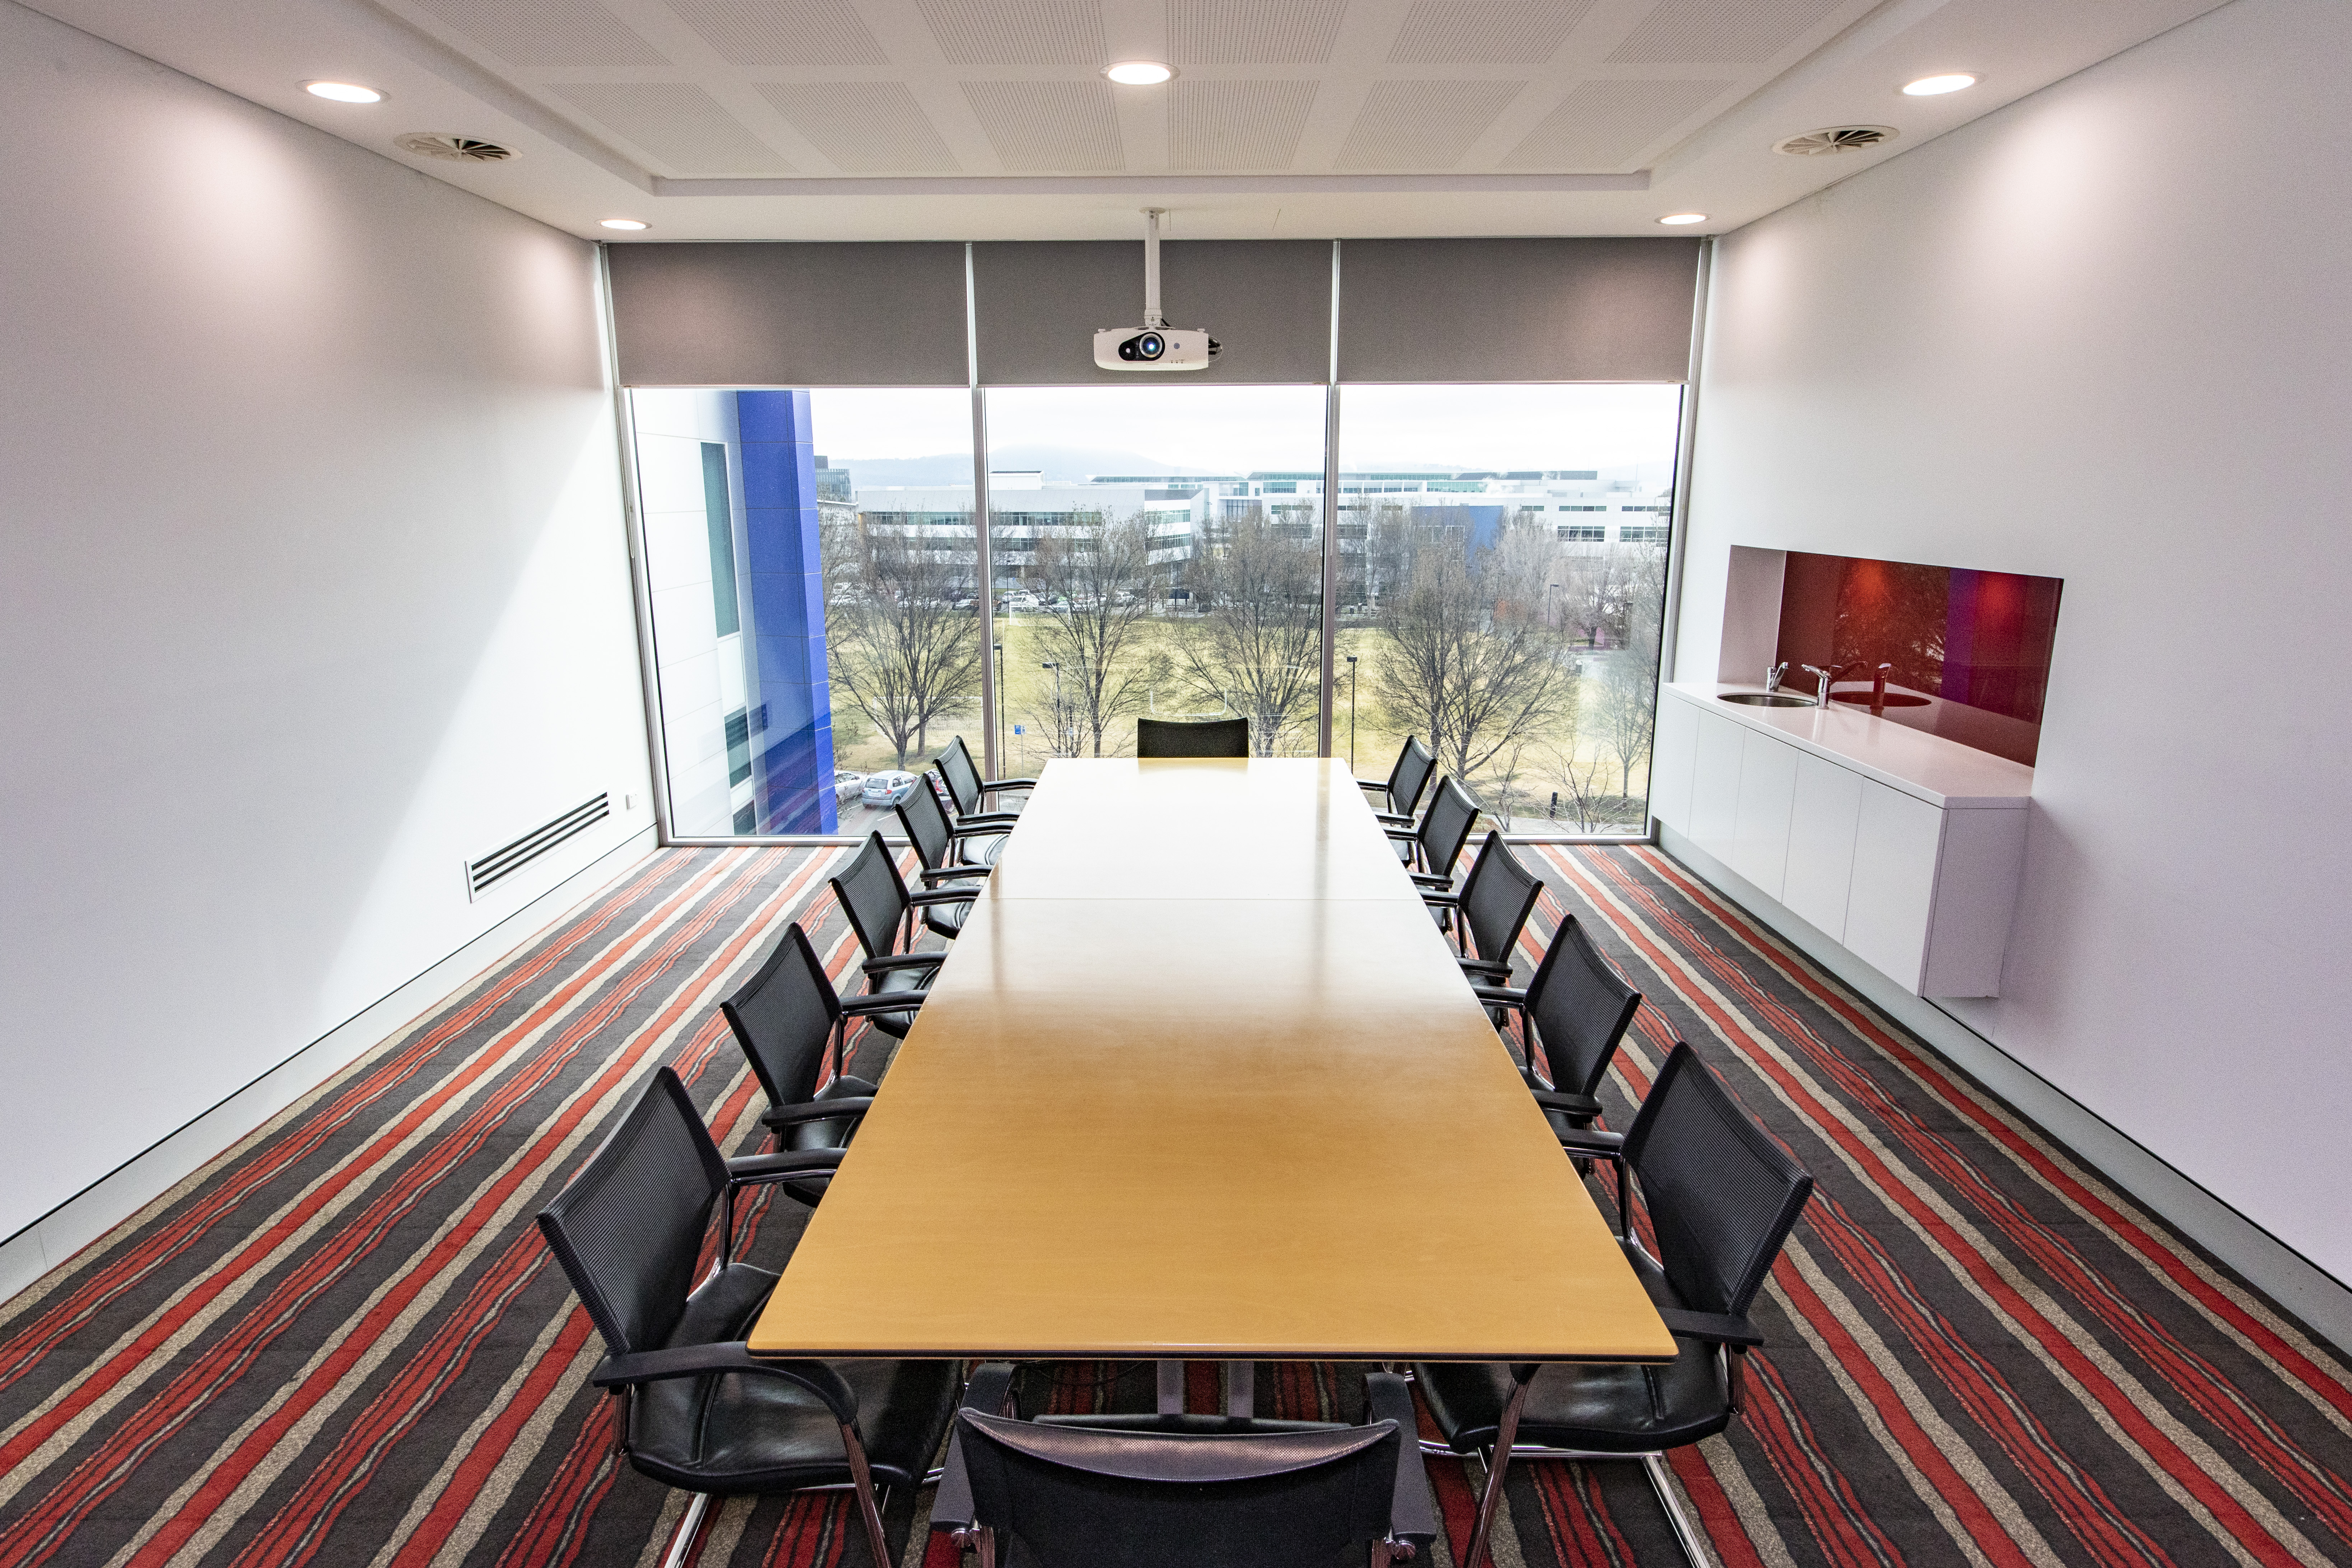 CONFERENCE ROOM GIVEAWAY